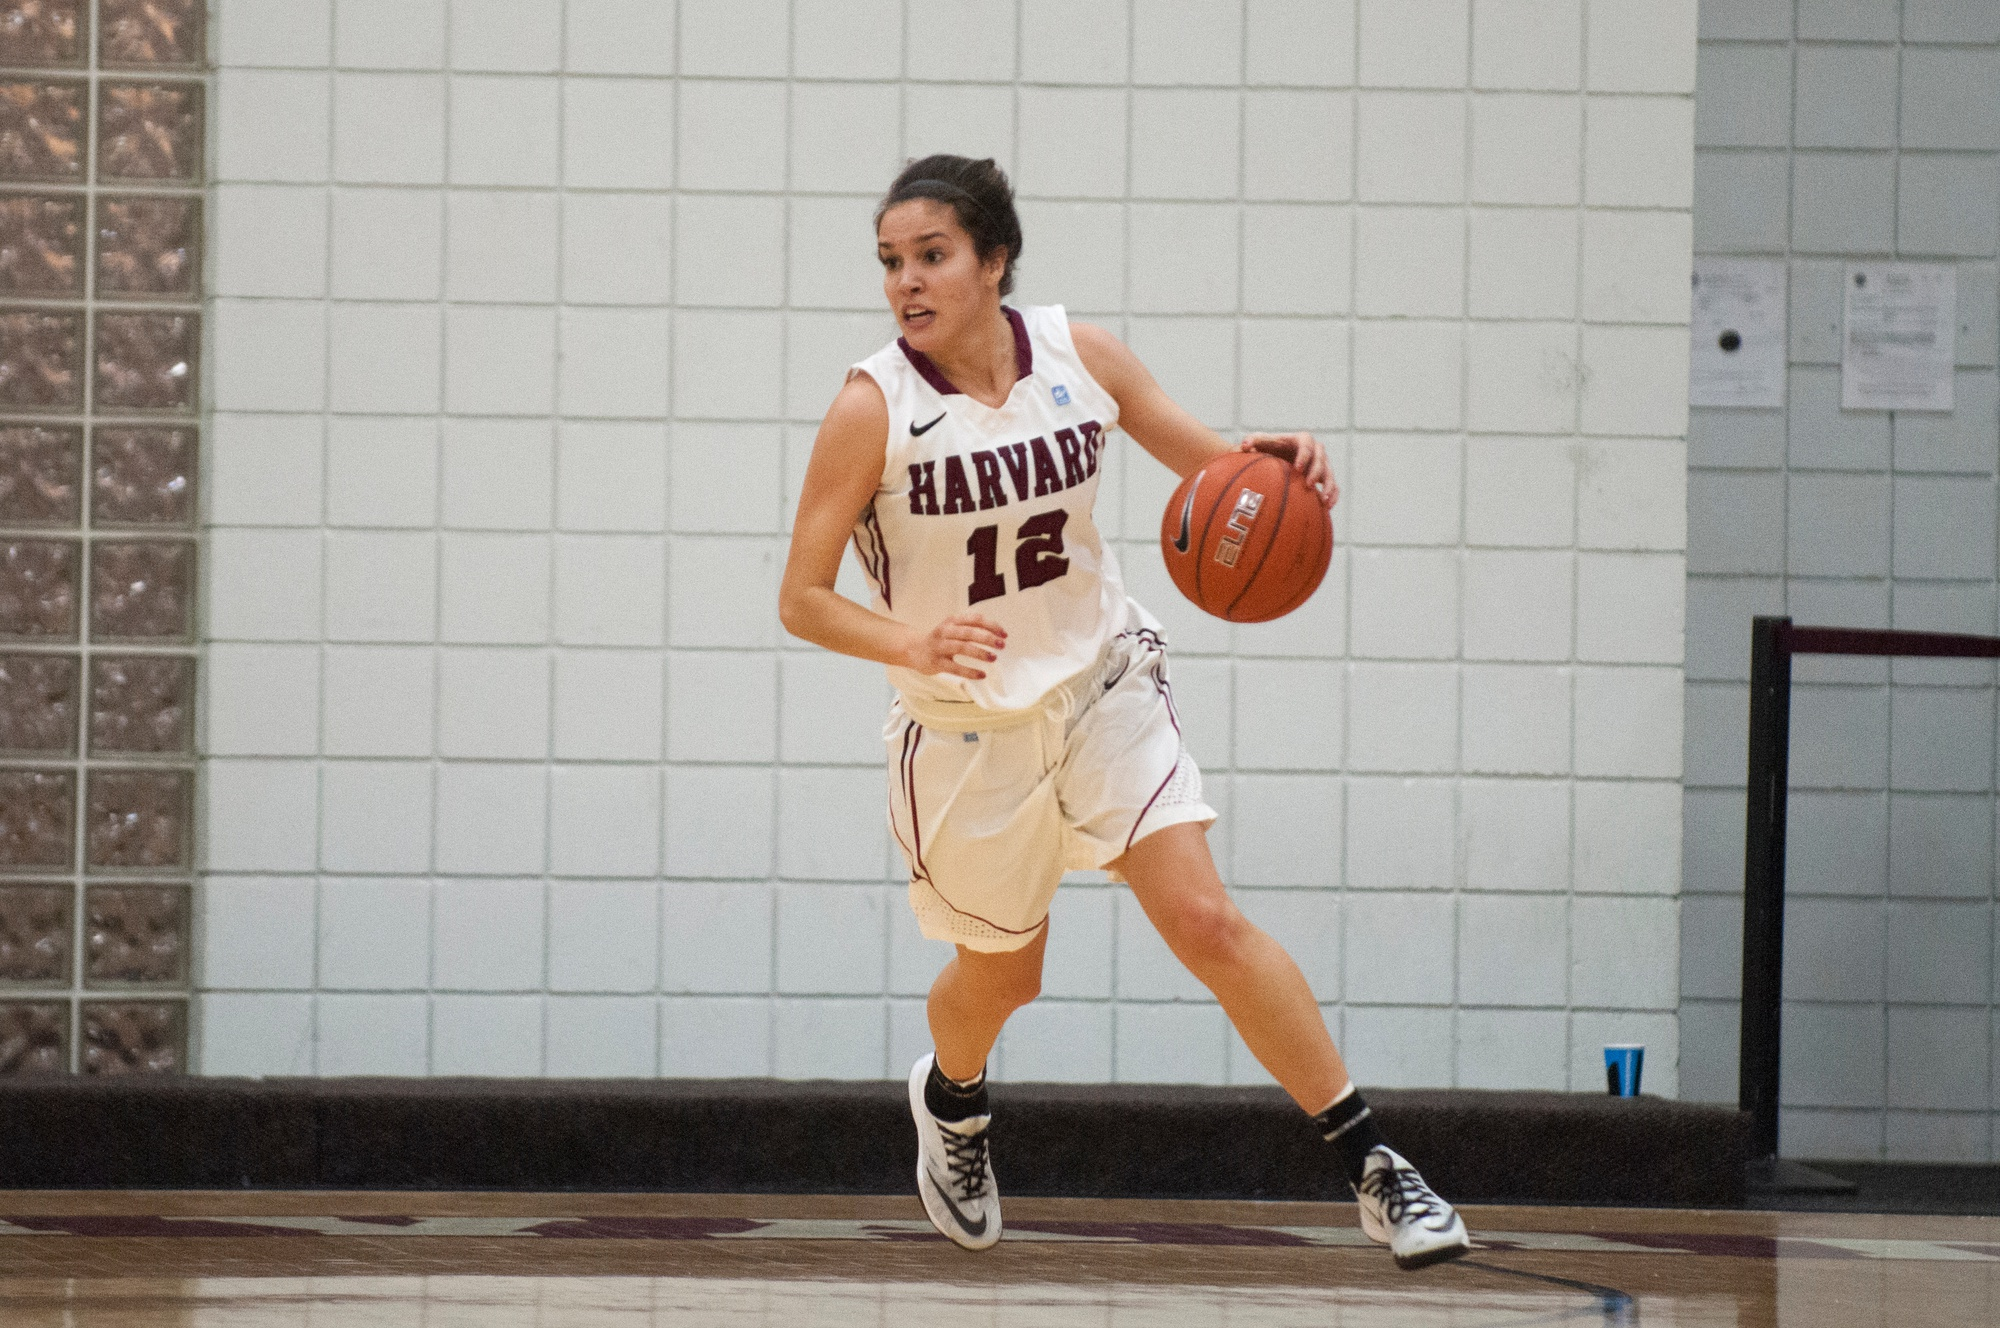 Shown here in previous action, senior guard Kit Metoyer registered 15 points in Harvard's 73-55 win over Boston University Tuesday night. Metoyer was one of three seniors to score in double-digits.